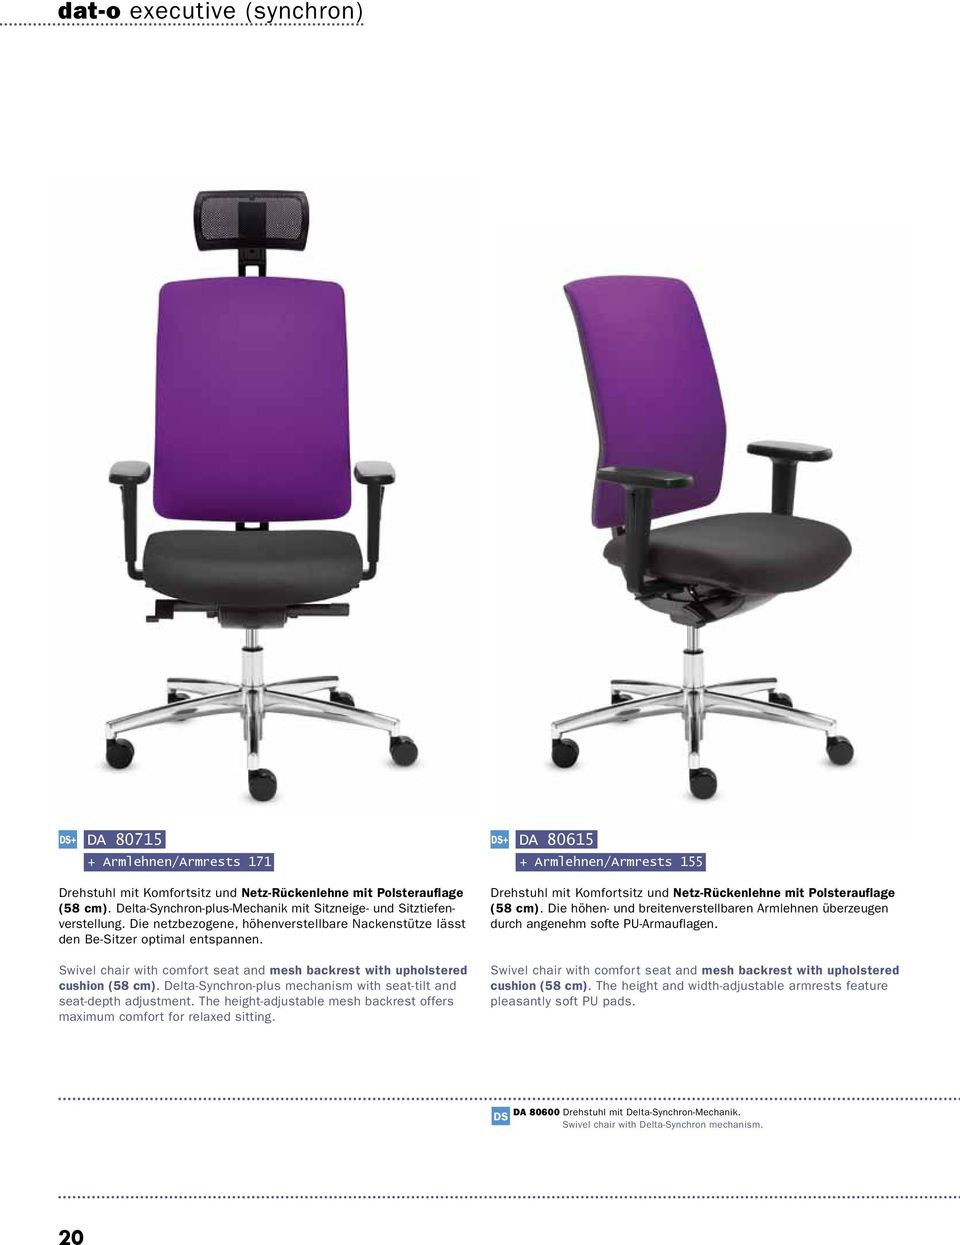 Swivel chair with comfort seat and mesh backrest with upholstered cushion (58 cm). Delta-Synchron-plus mechanism with seat-tilt and seat-depth adjustment.